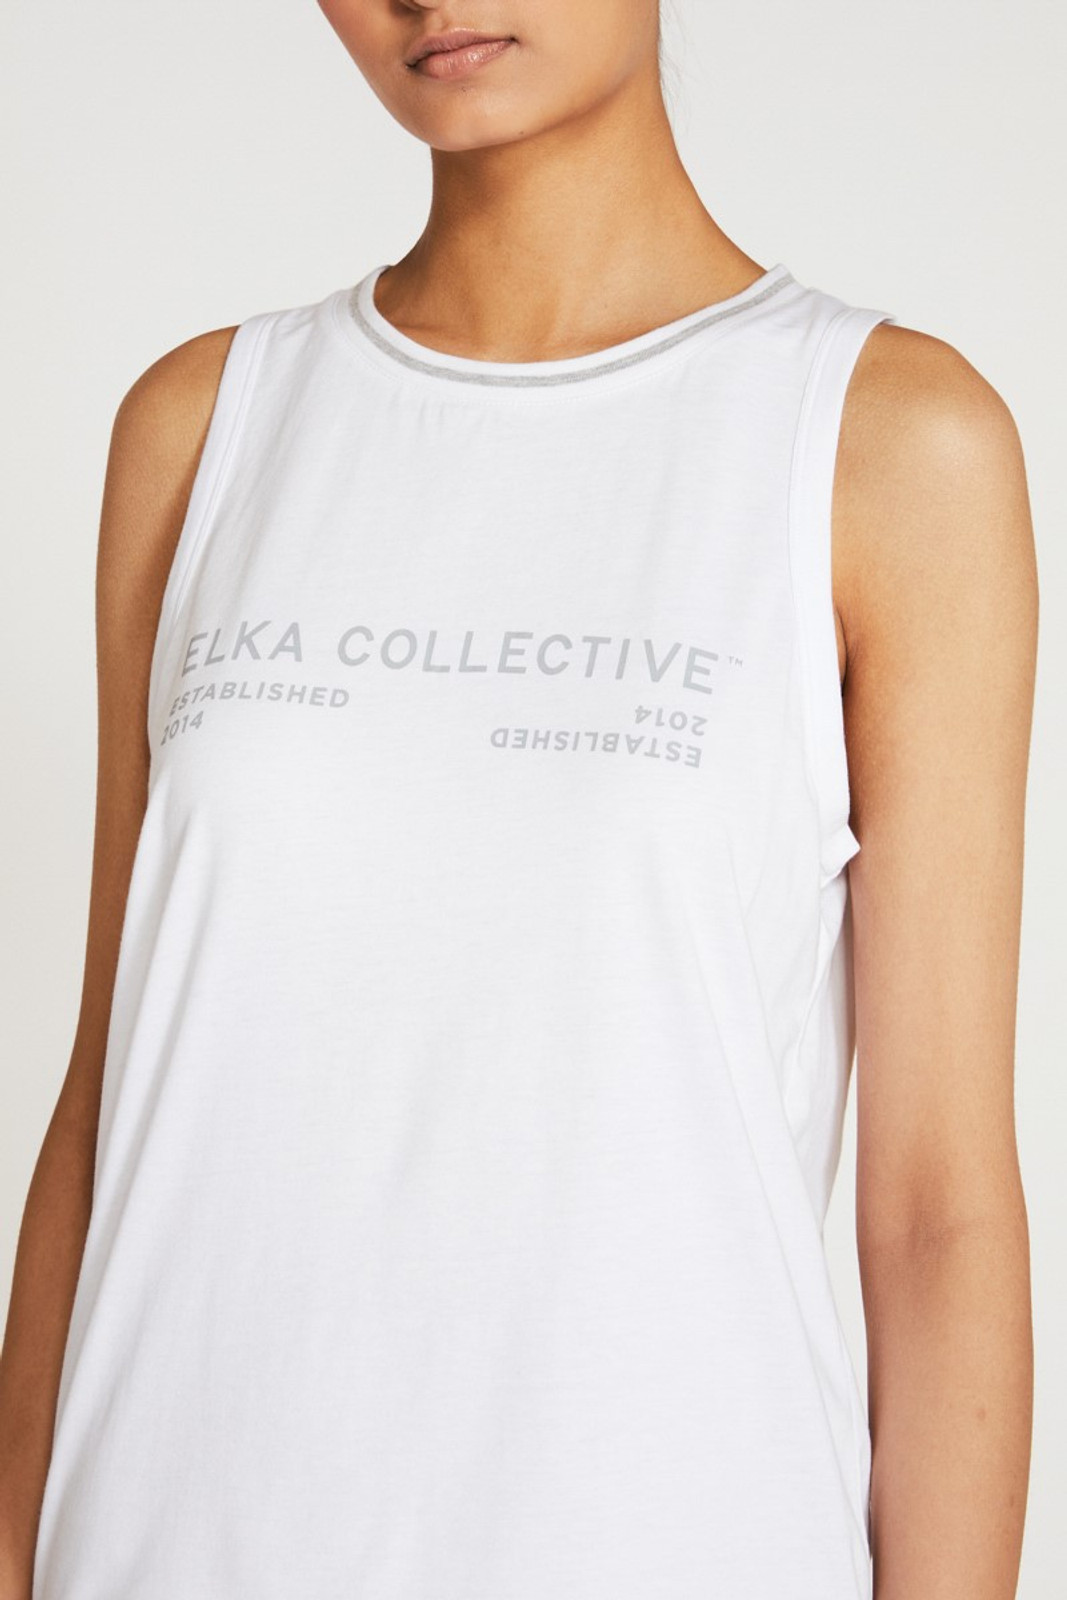 Elka Collective Racer Tank White  1